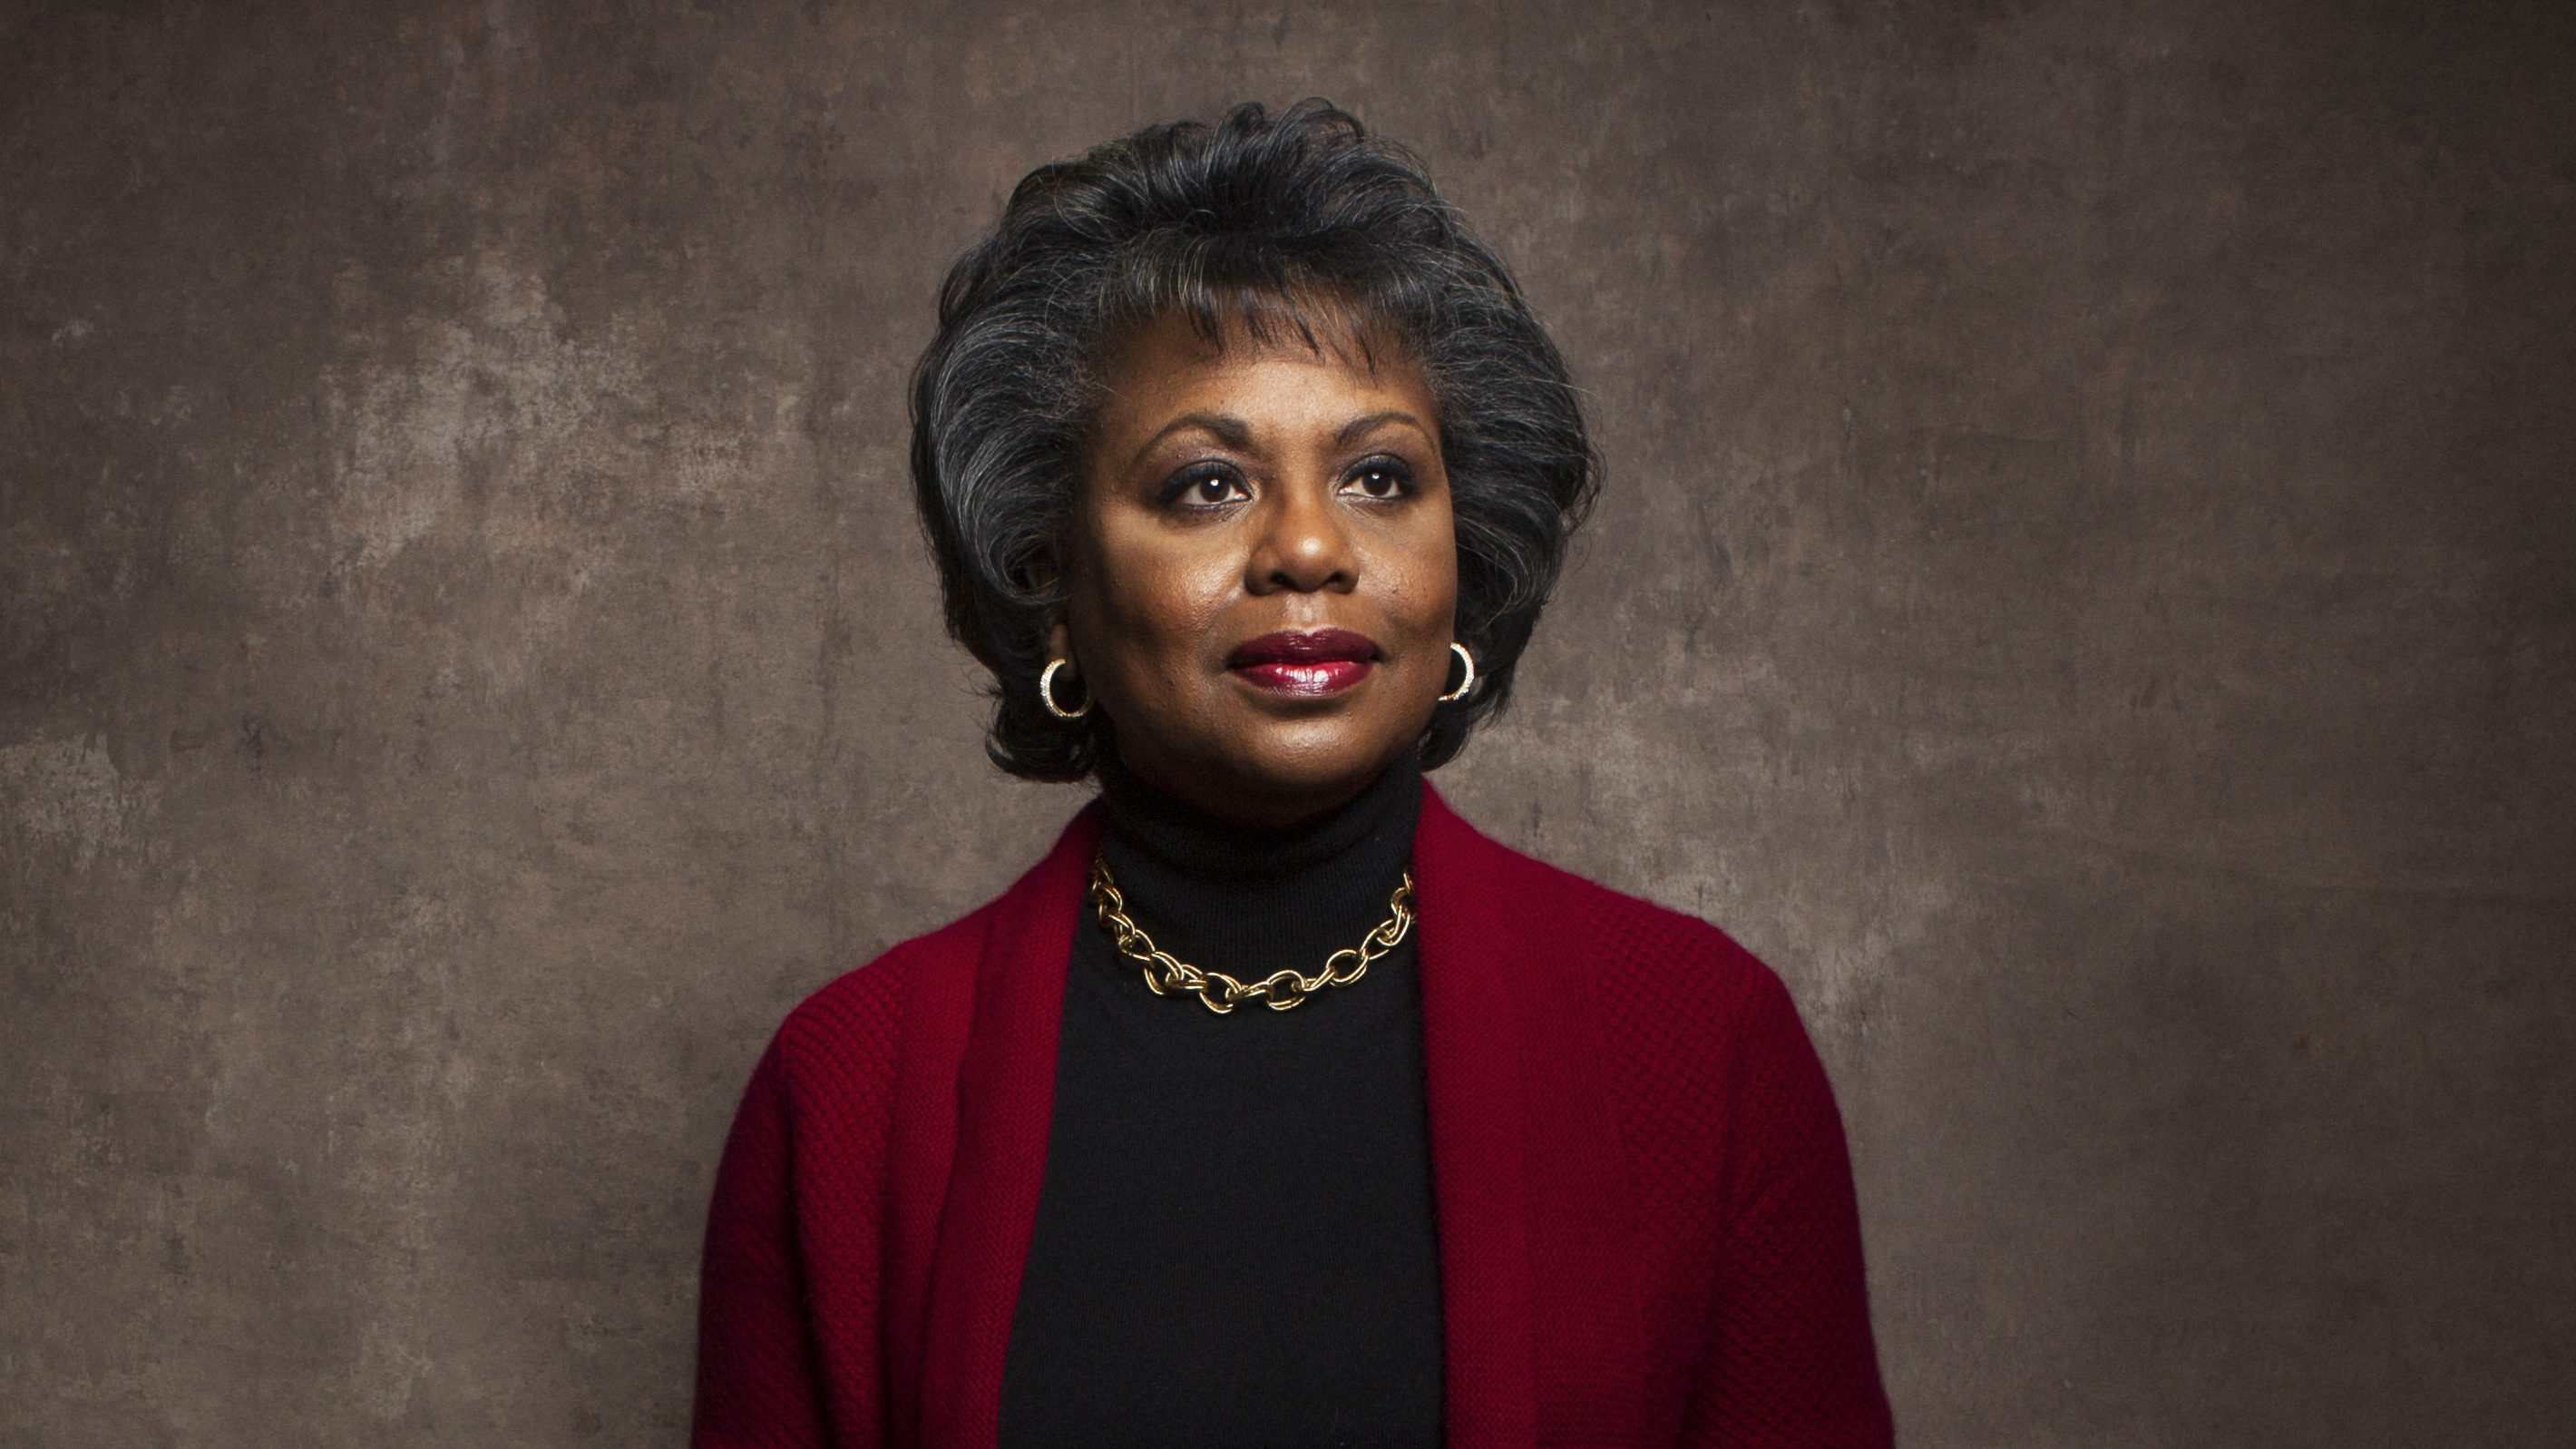 "FILE - This Jan. 18, 2013 file photo shows Anita Hill during the Sundance Film Festival in Park City, Utah. Hill made national headlines in 1991 when she testified that then-Supreme Court nominee Clarence Thomas had sexually harassed her. Now, more than 20 years later, director Freida Mock explores Hill's landmark testimony and the resulting social and political changes in the documentary ""Anita."" (Photo by Victorial Will/Invision/AP, File)"